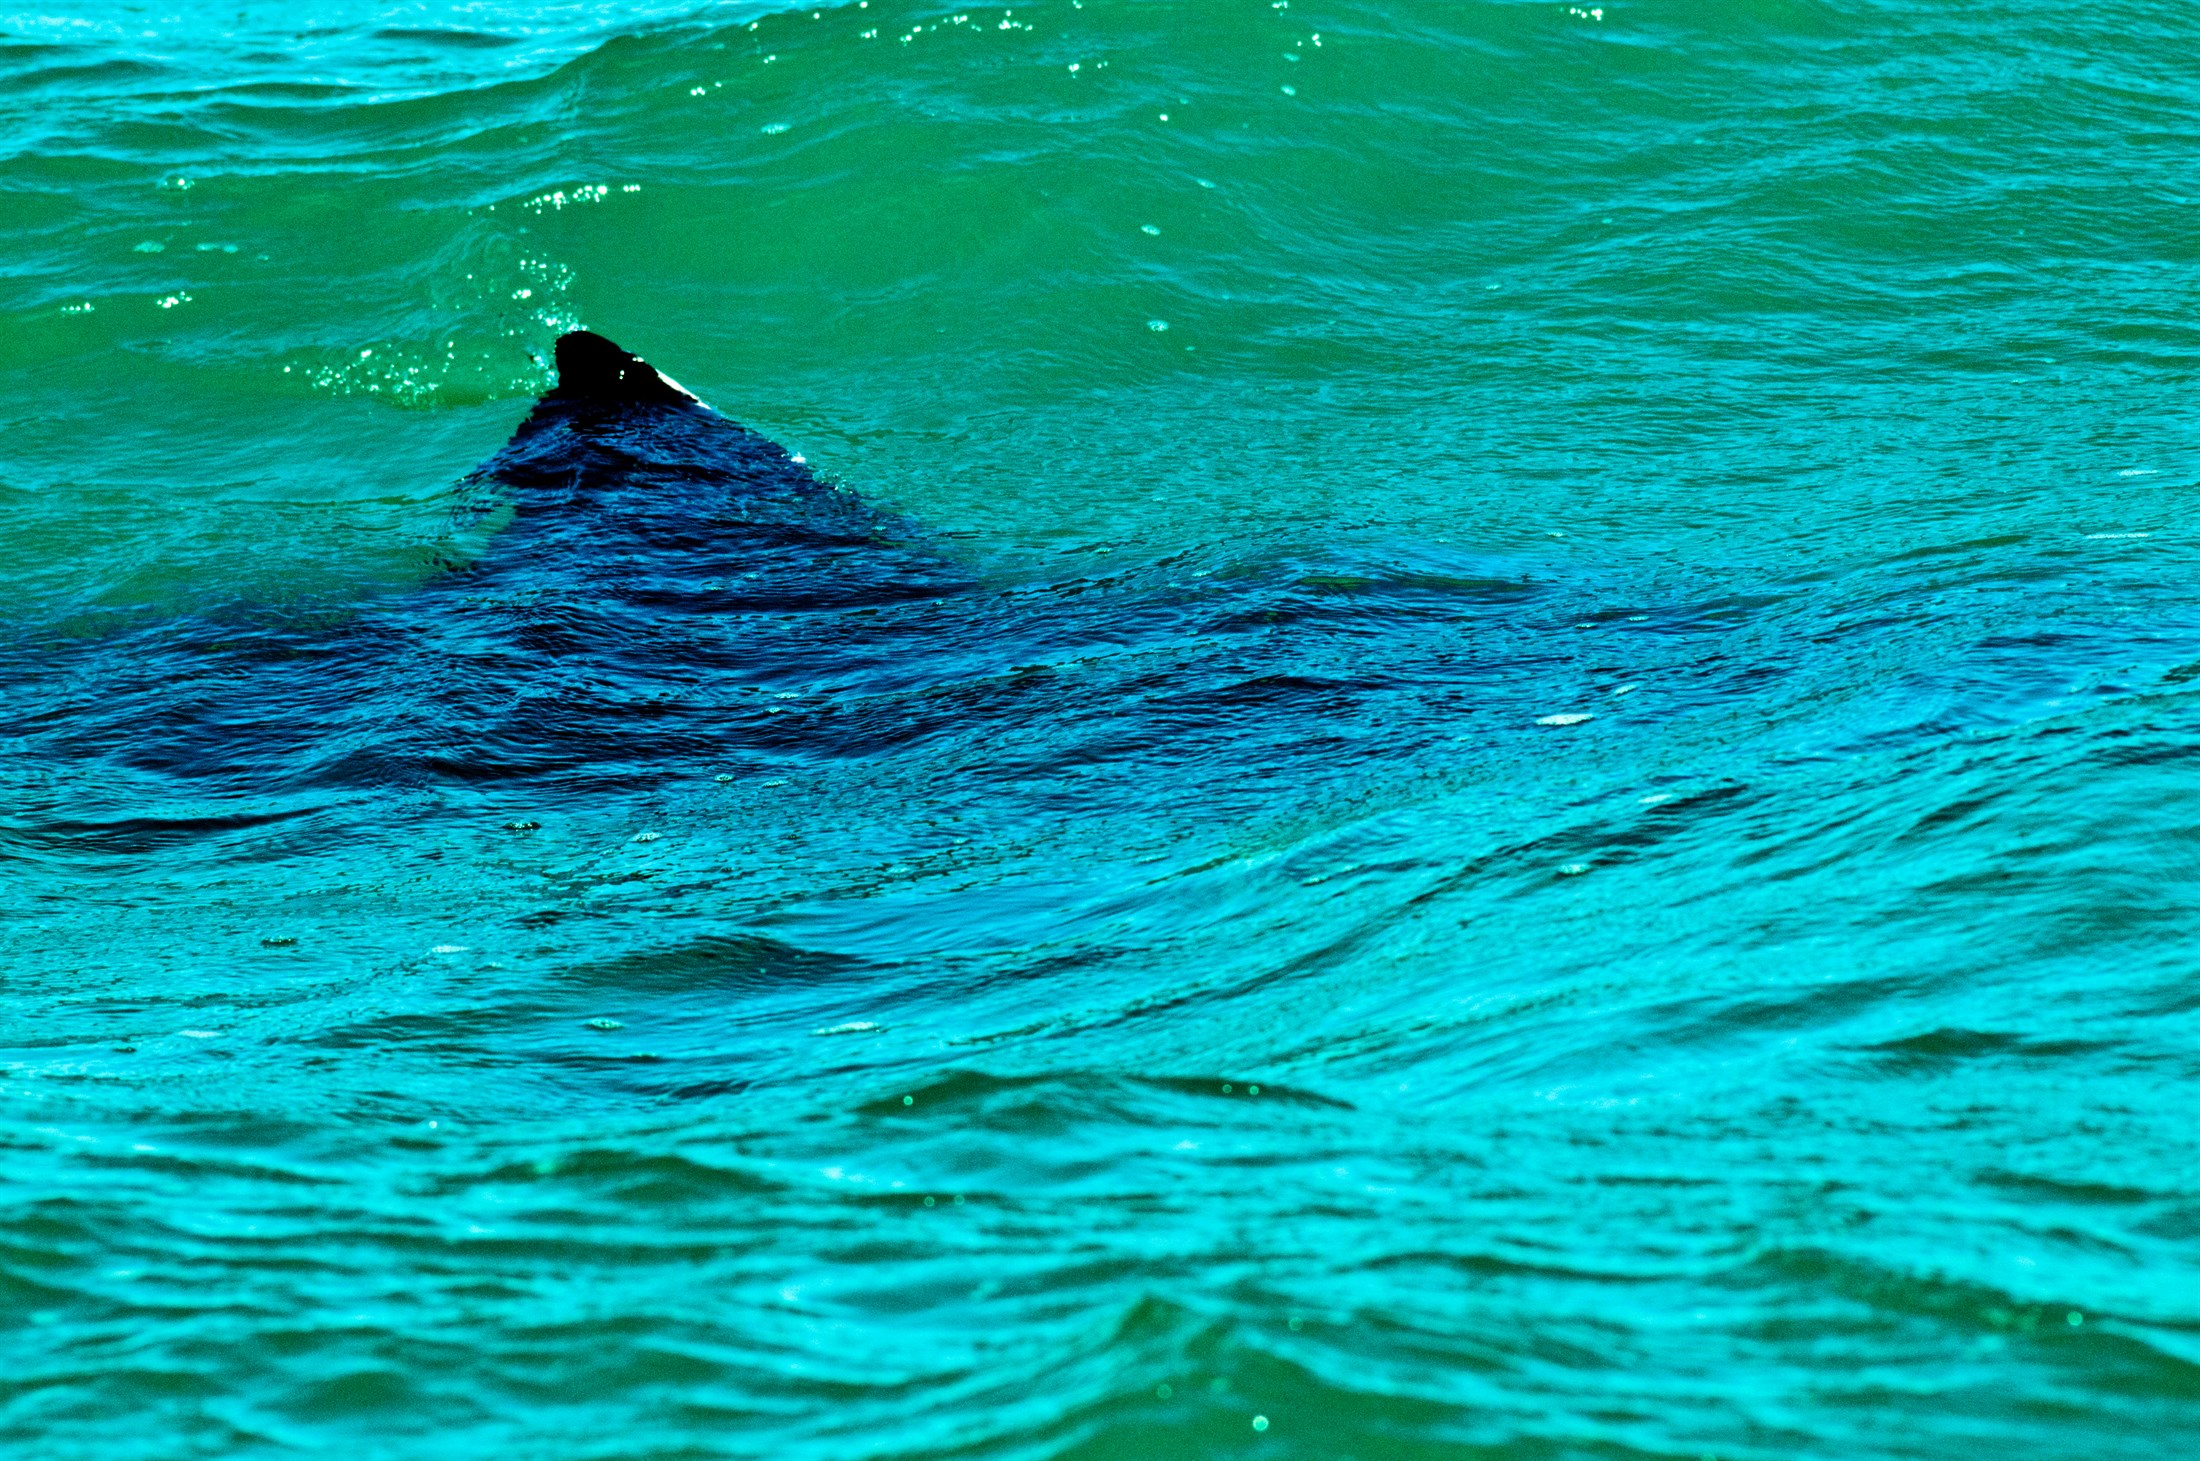 great-white-shark-carcharodon-carcharias-gaansbaai-western-cape-south-africa_c007-2200x1461px-2